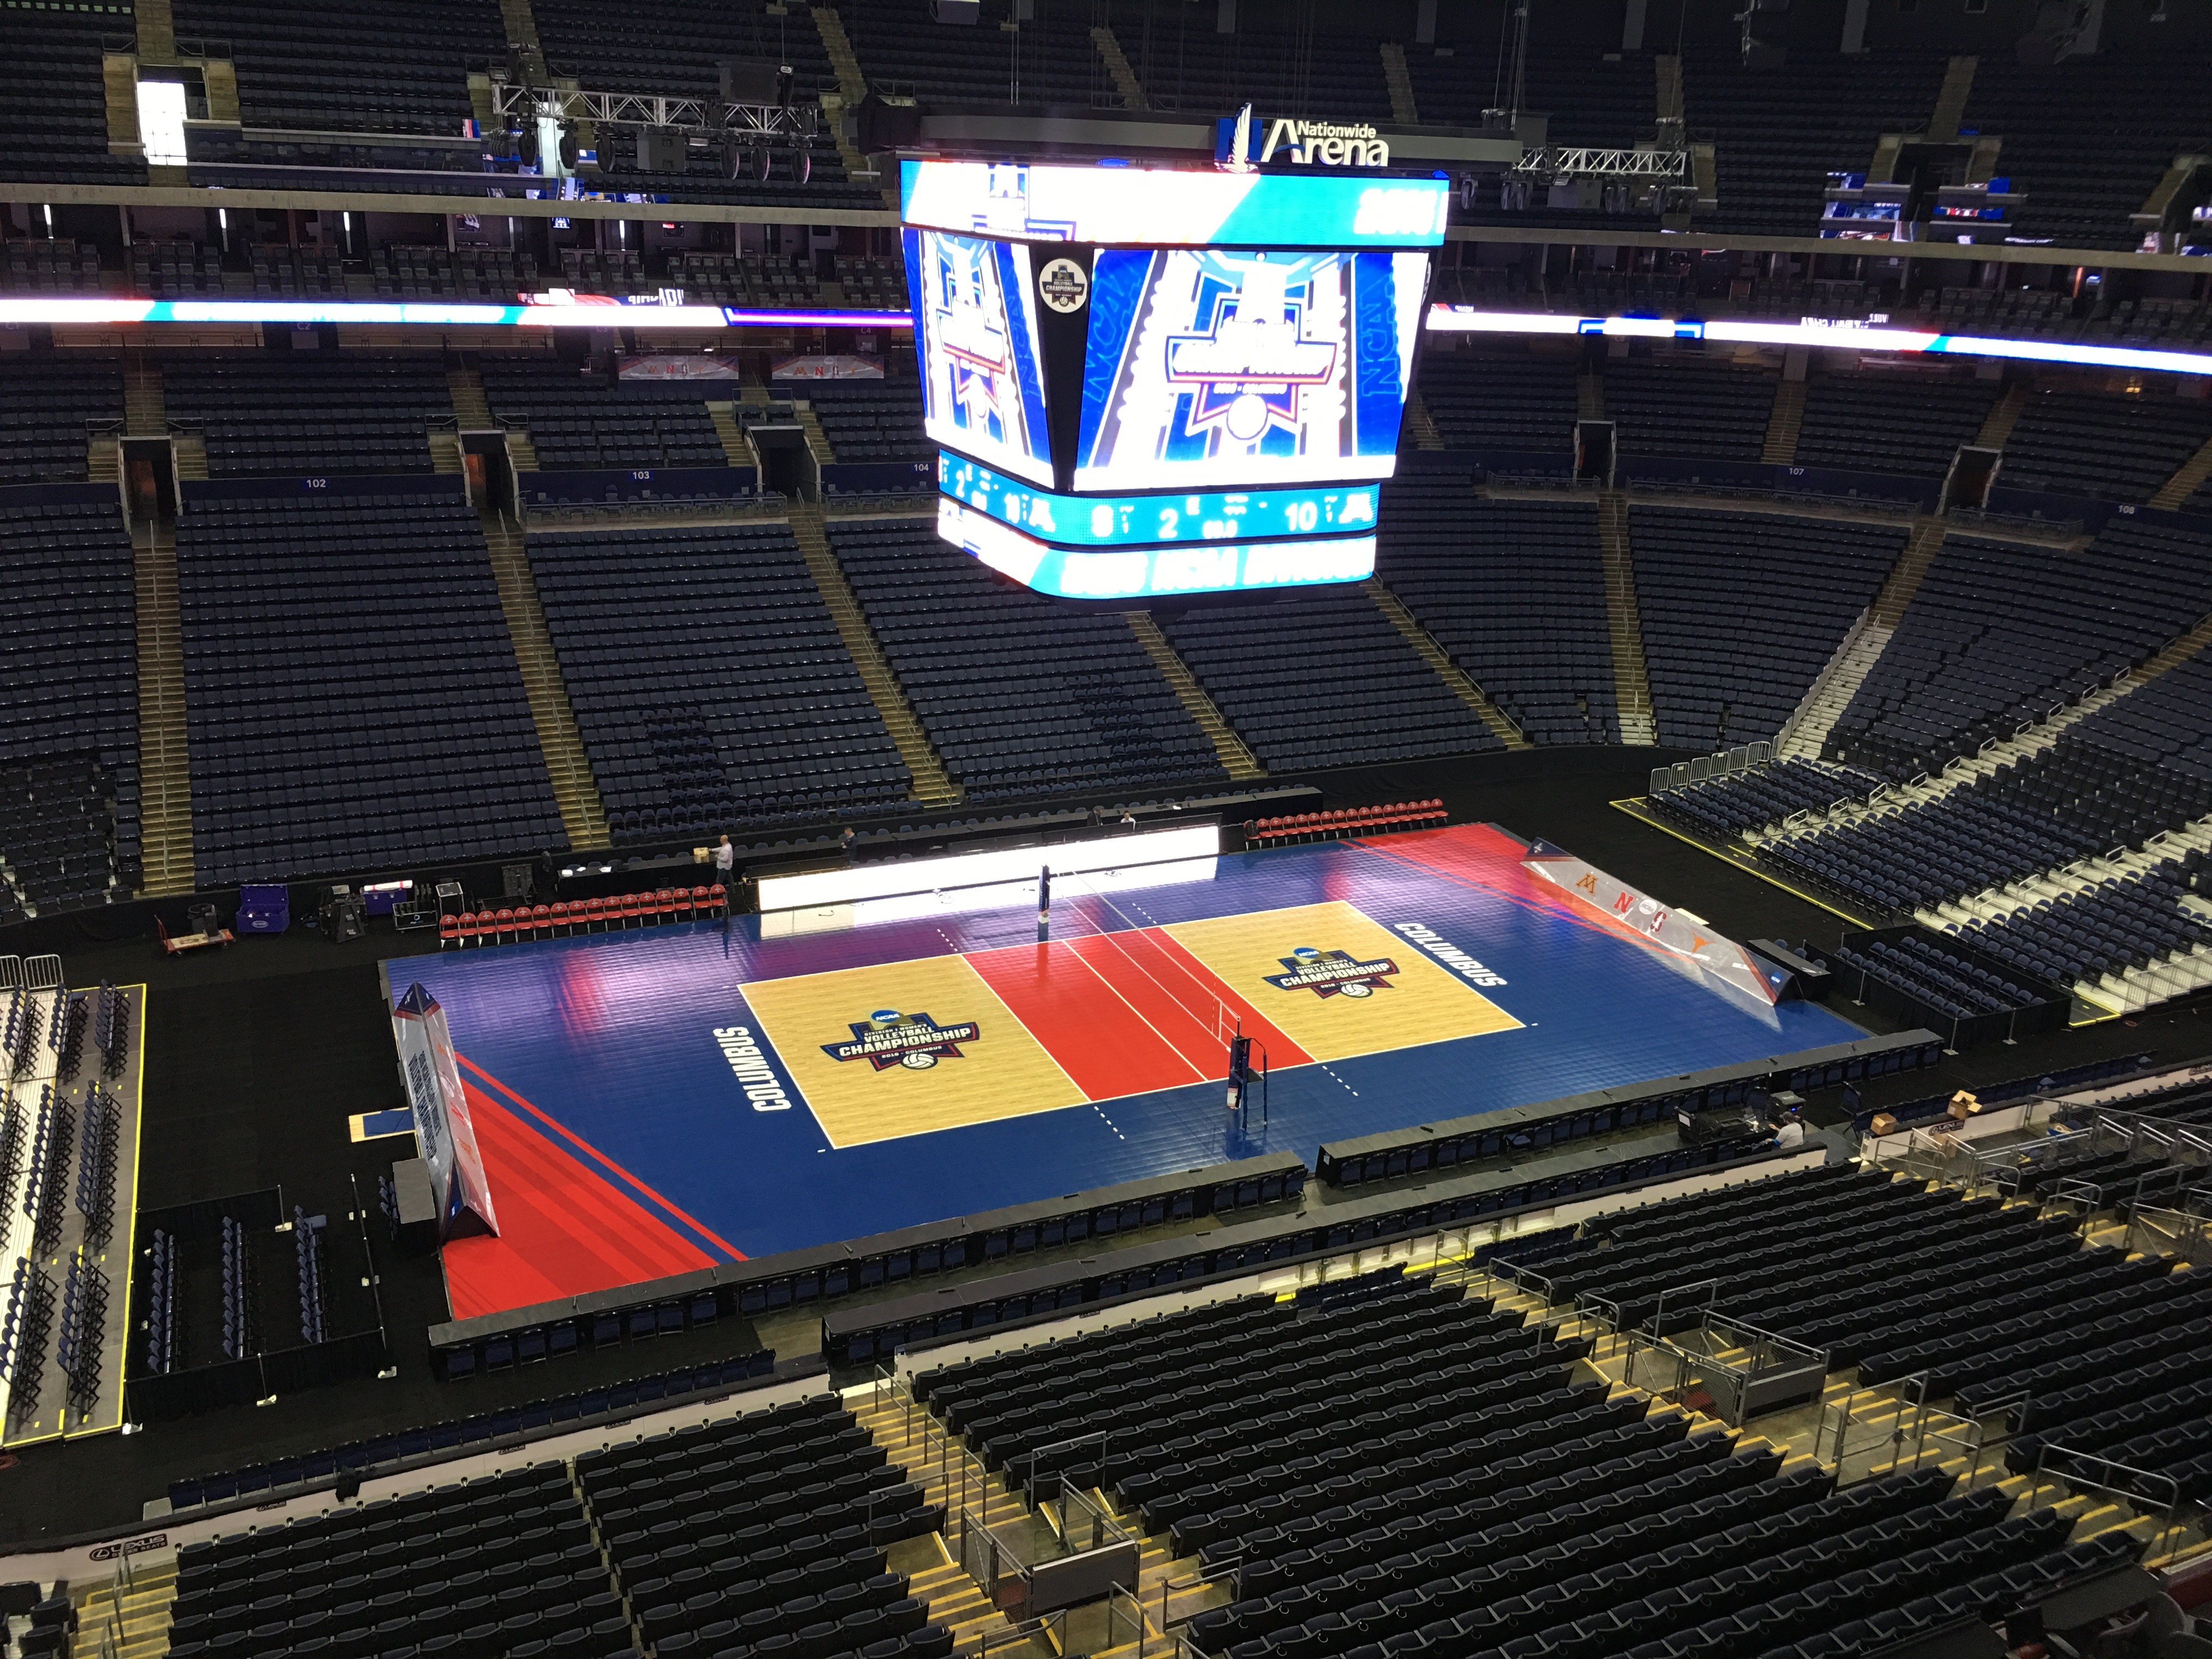 Professional Stadium Court Flooring by Sport Court